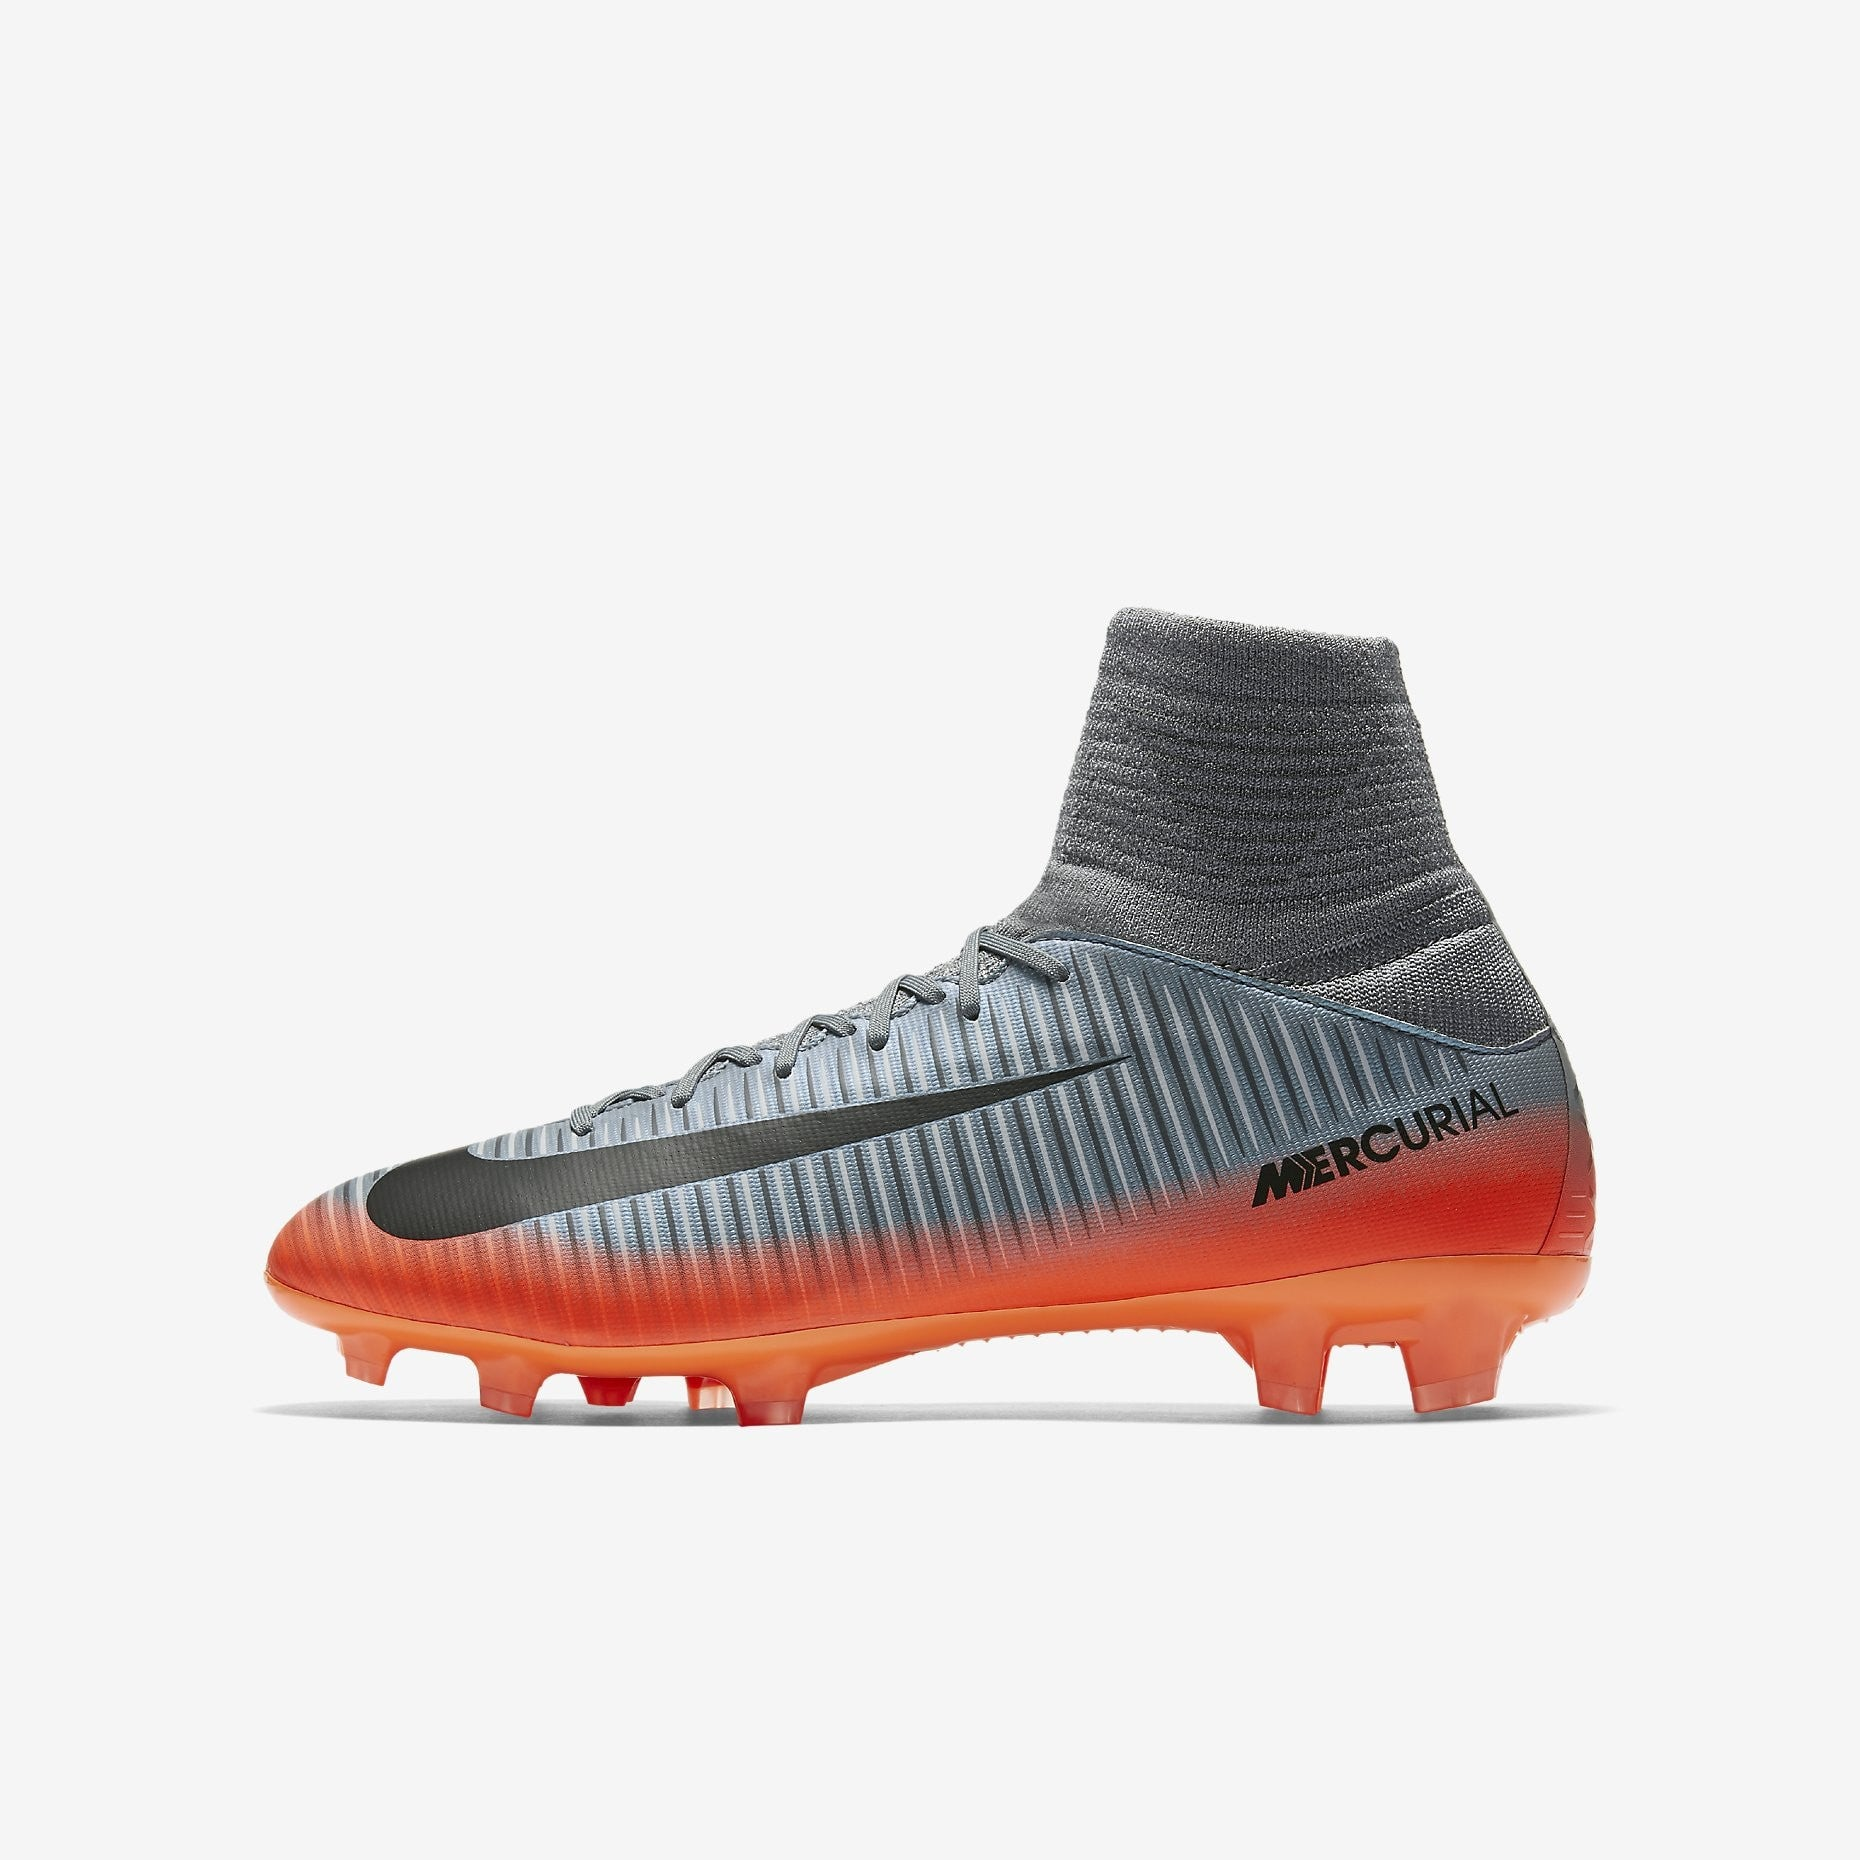 046b7a63bd2 Nike - Nike Junior Mercurial Superfly V CR7 FG - La Liga Soccer